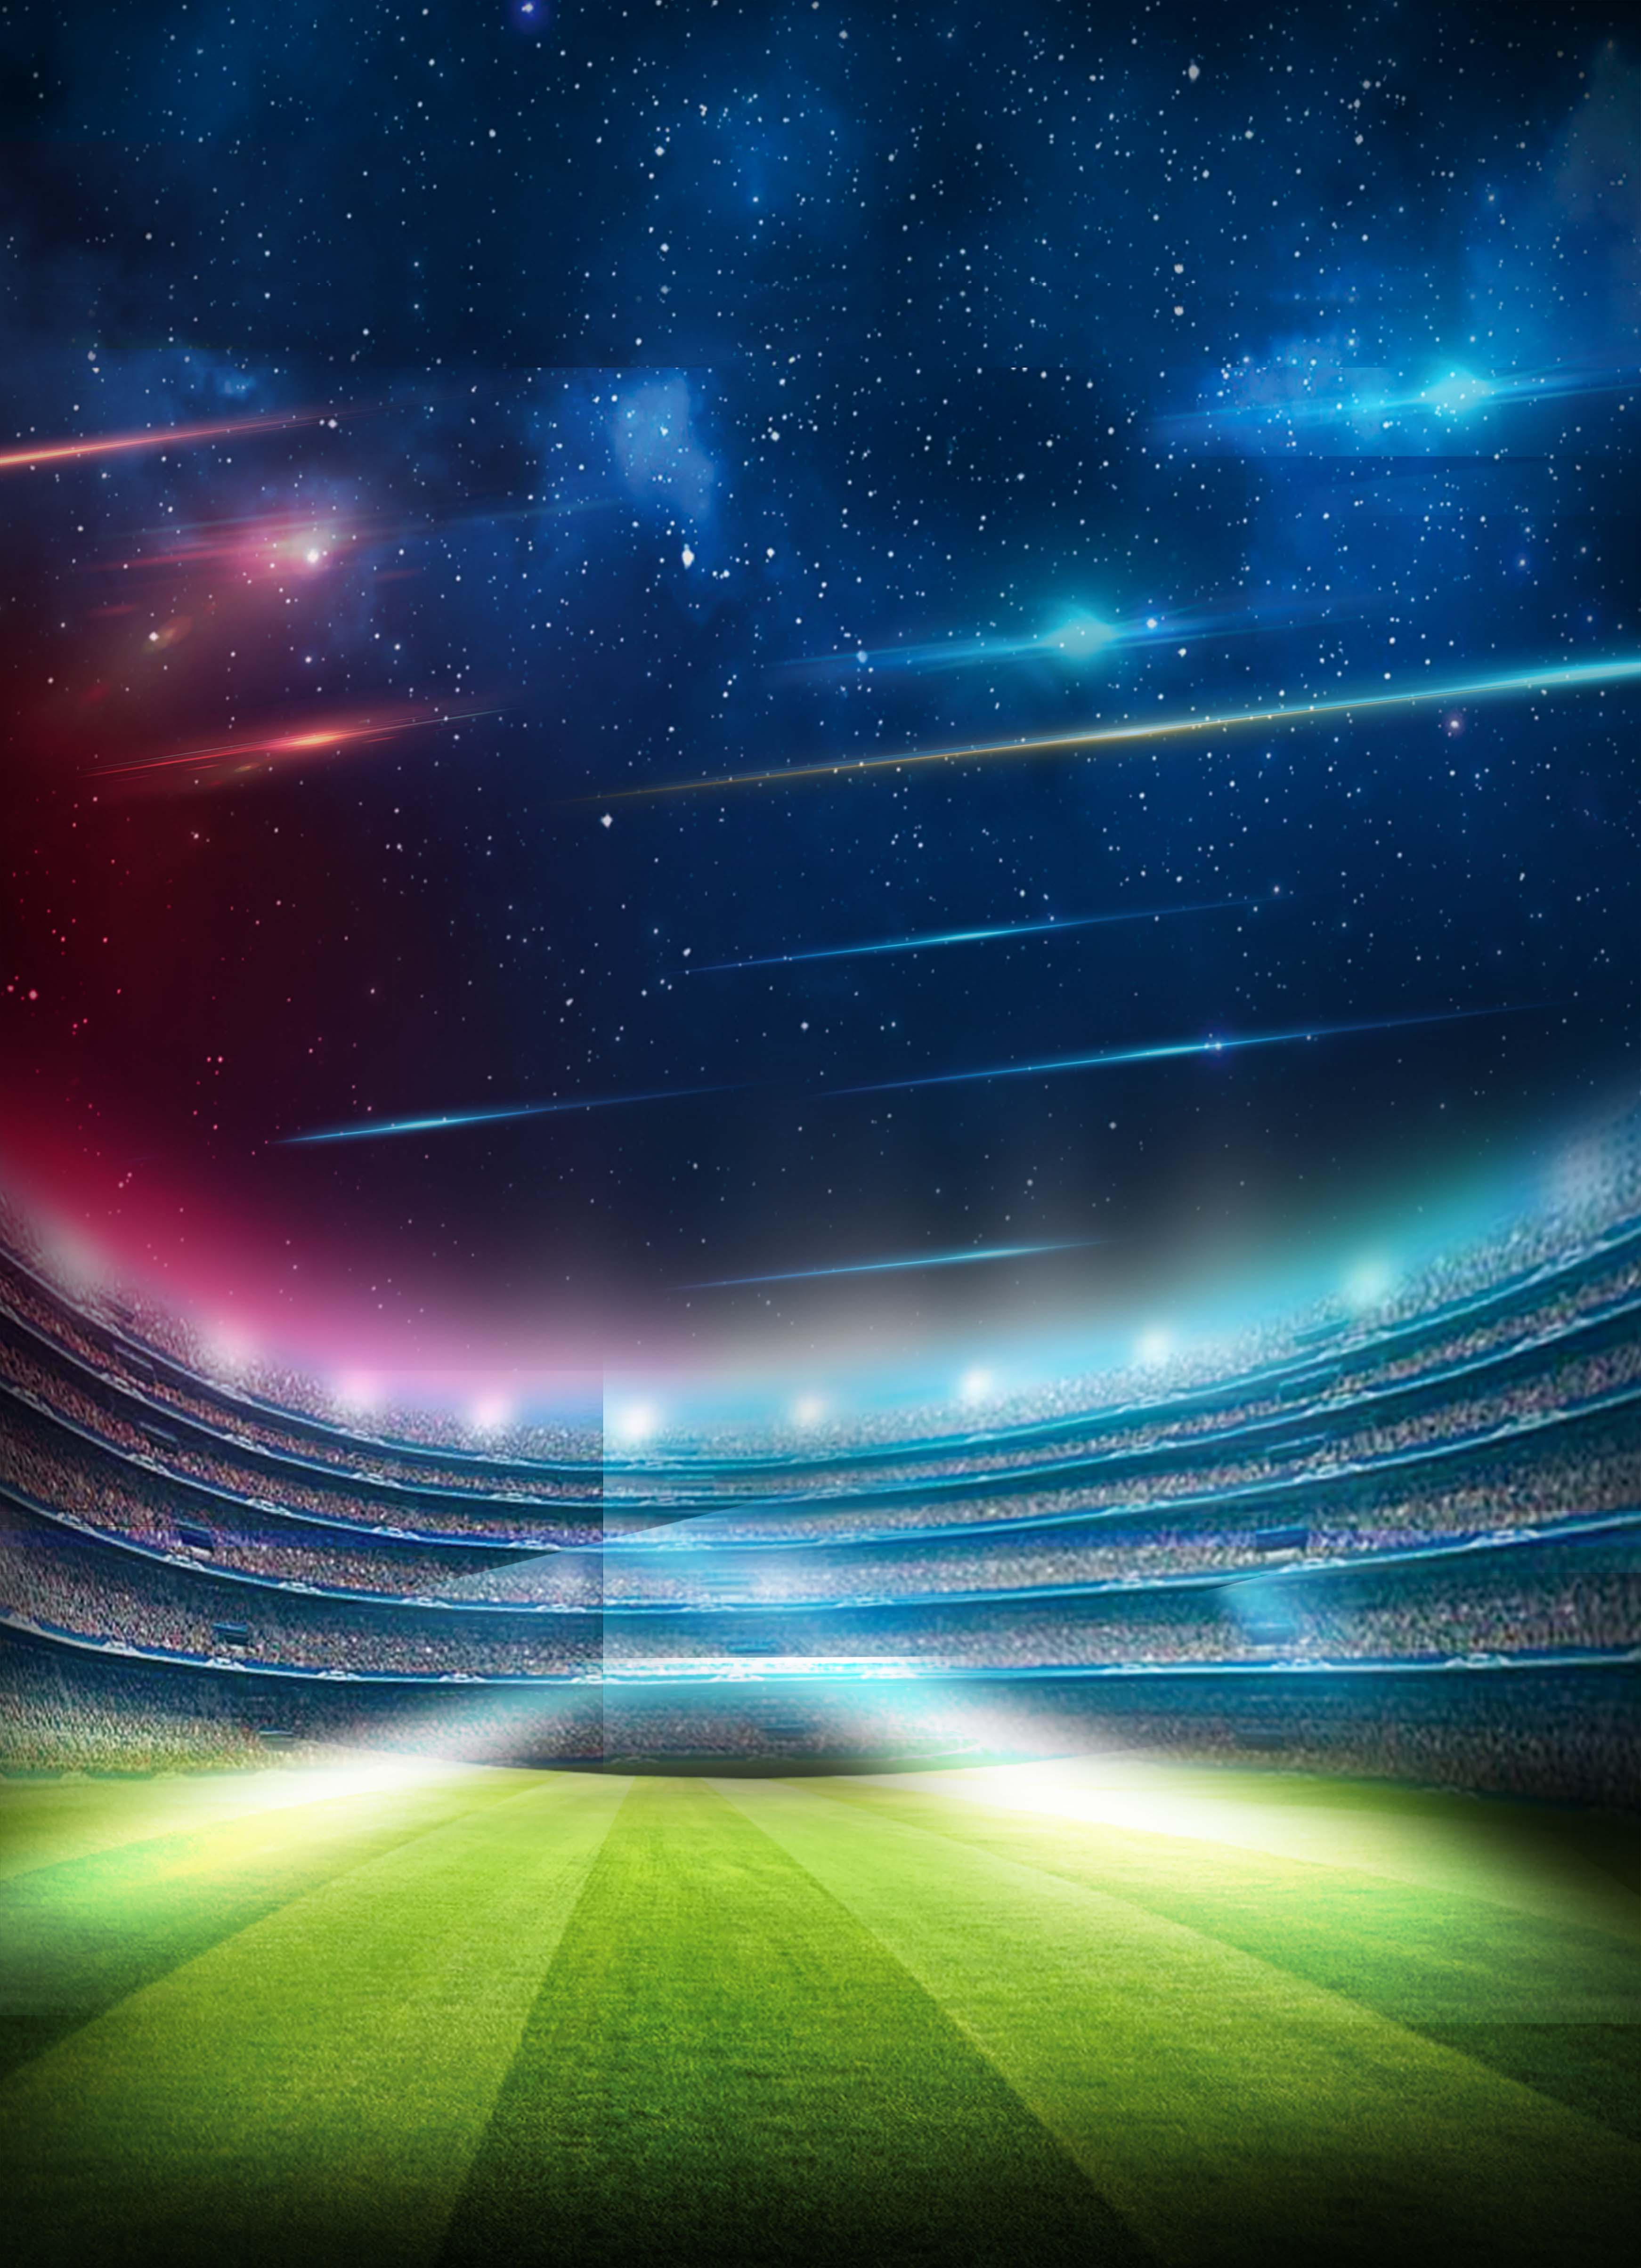 3d Fire Wallpaper Background Football Field Background Football Field Stands